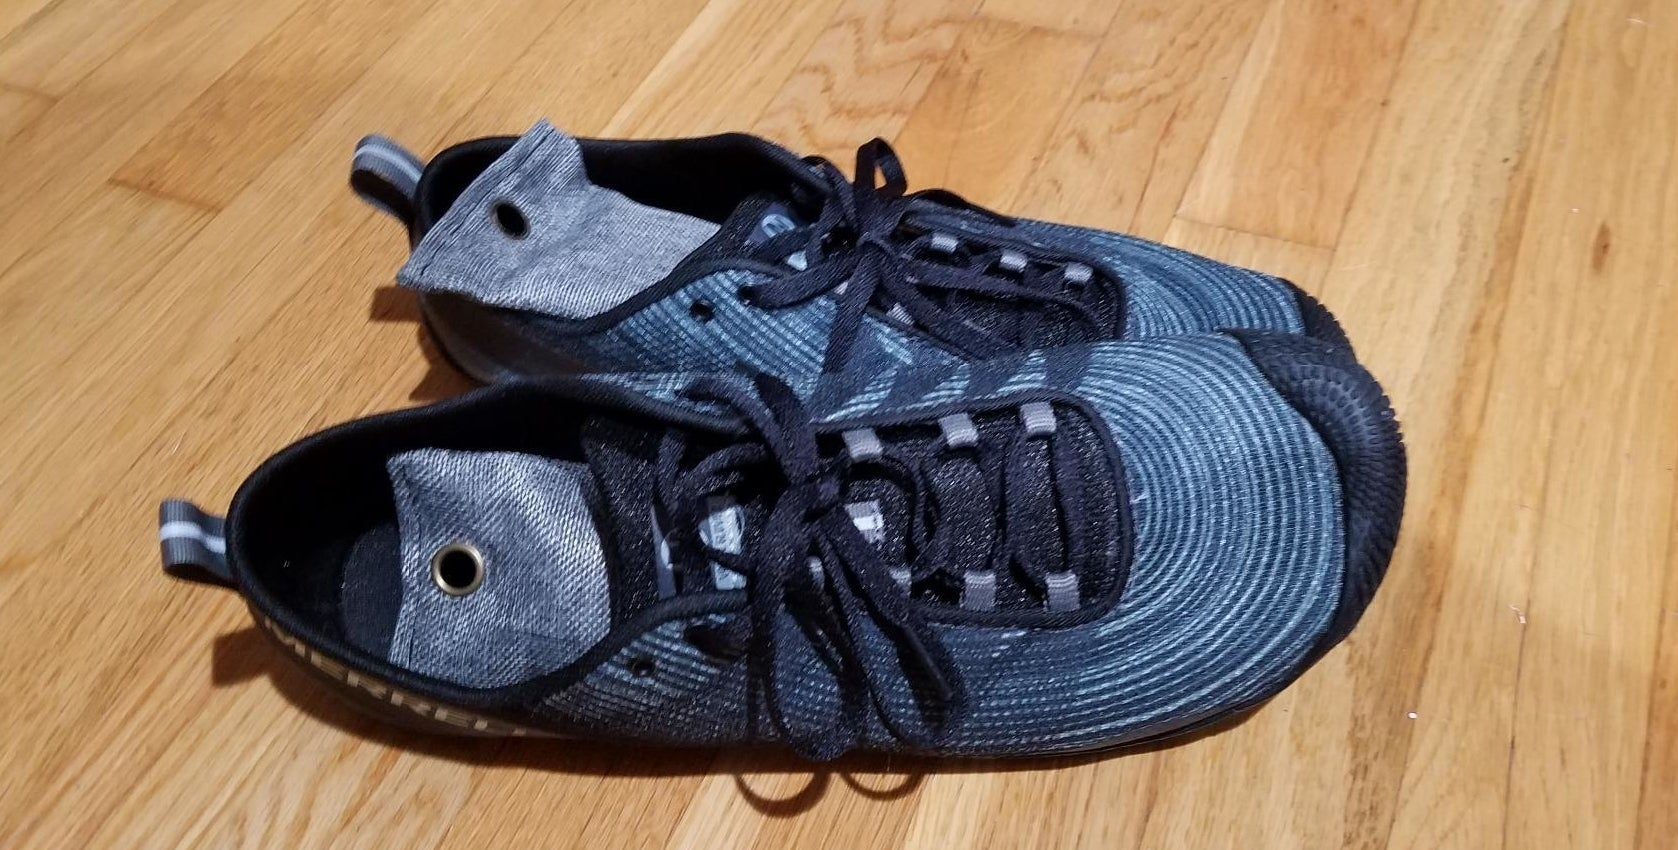 a reviewer photo of a pair of sneakers with dark blue shoe deodorizers inside